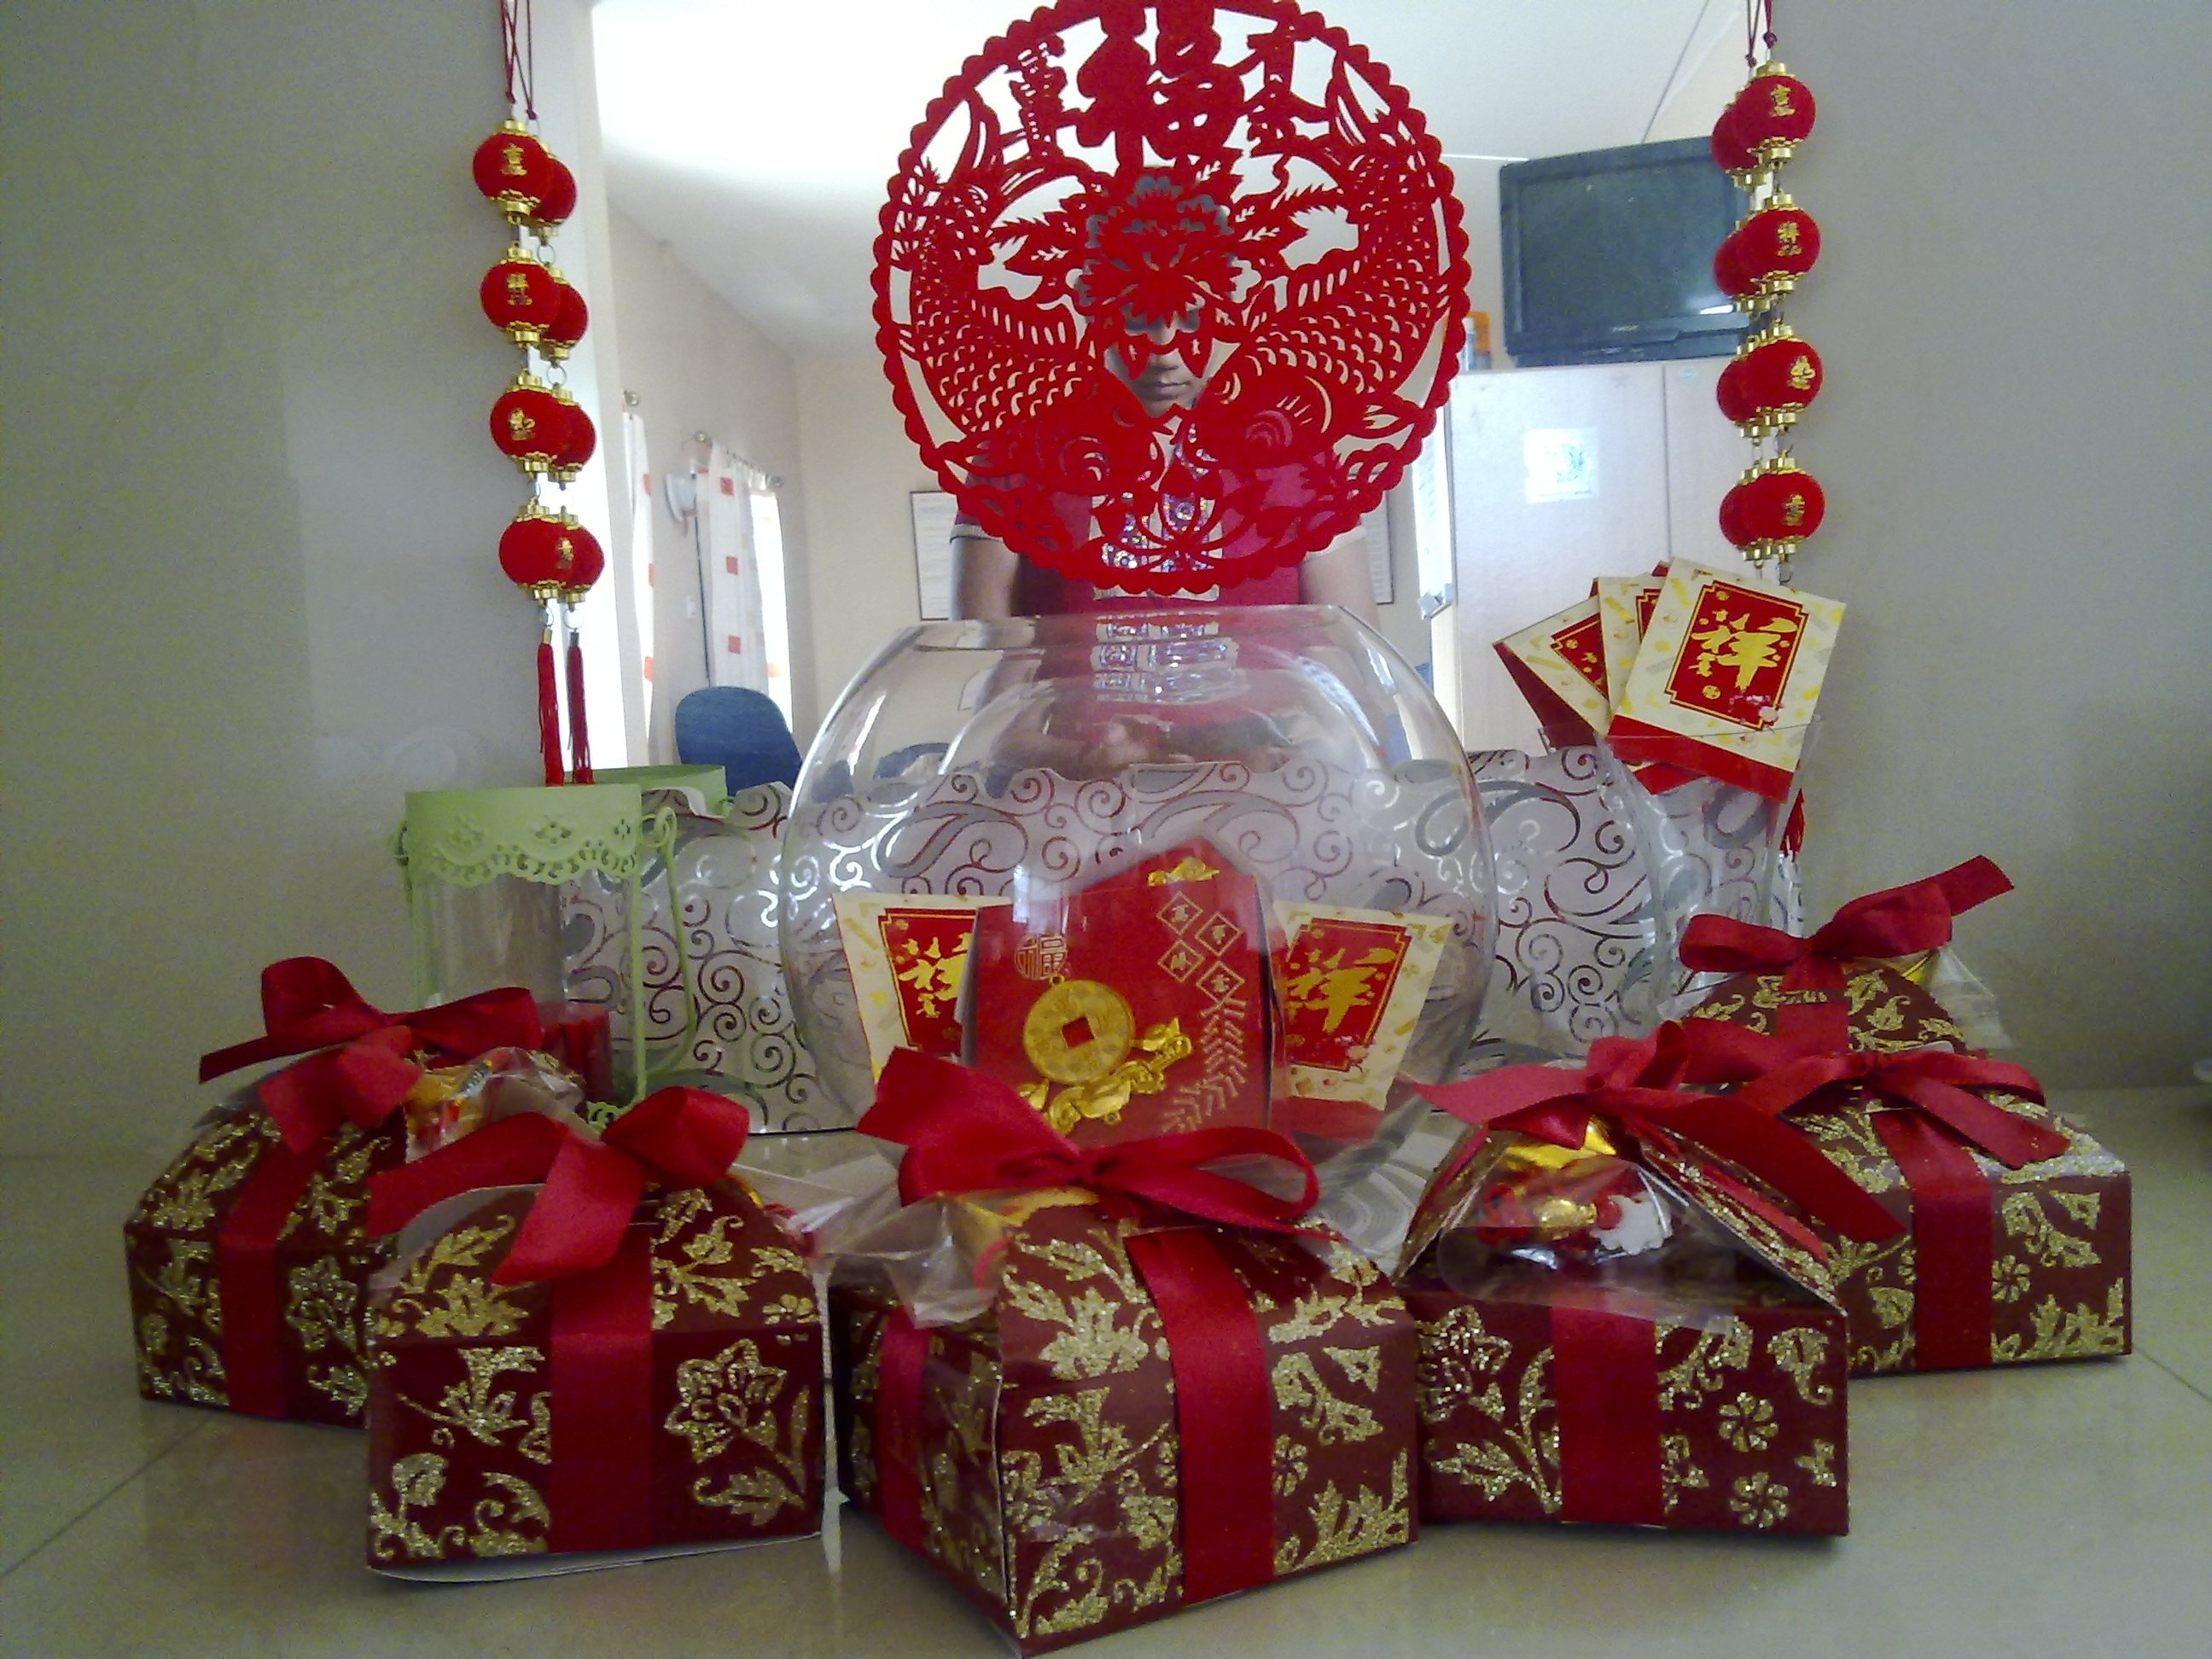 10 Fantastic Chinese New Year Decoration Ideas chinese new year decoration ideas soucreations 1 2020